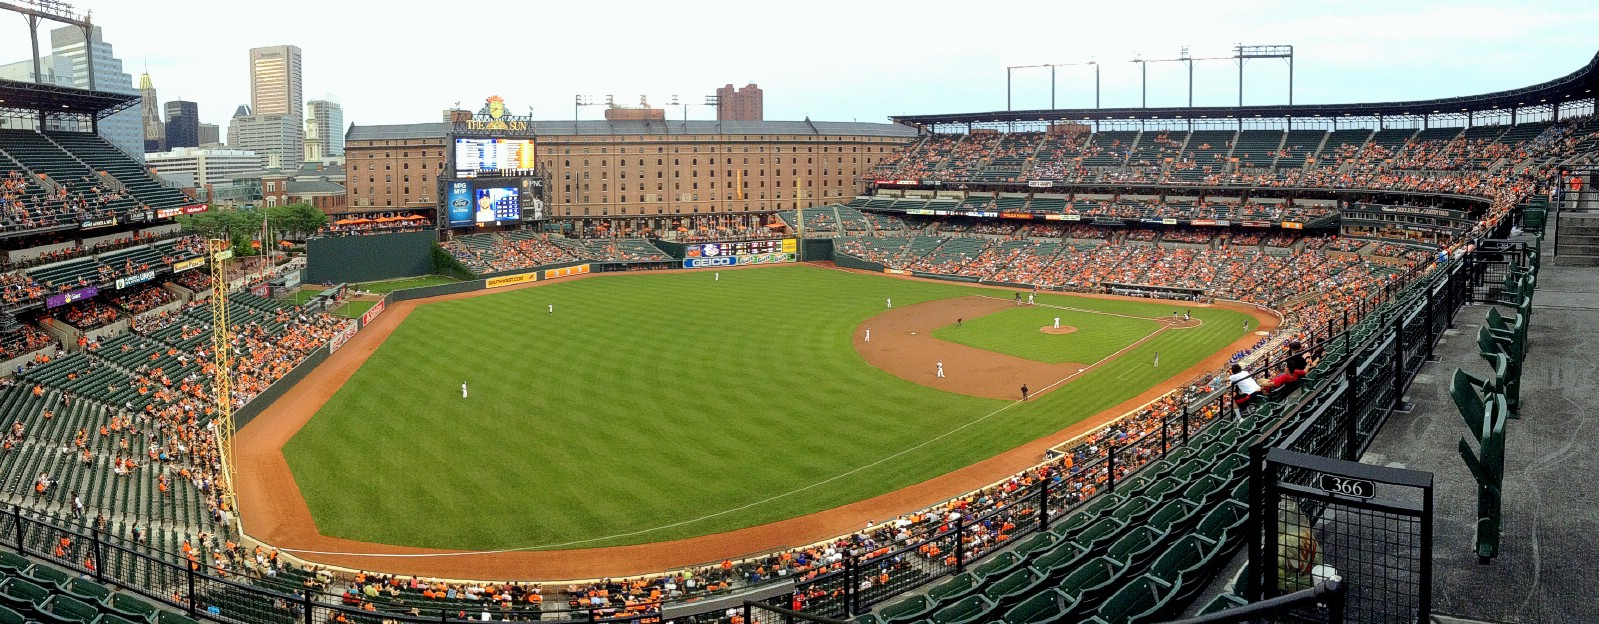 A panorama of Oriole Park at Camden Yards in Baltimore, Maryland, USA. July 9th 2013 (iPod)